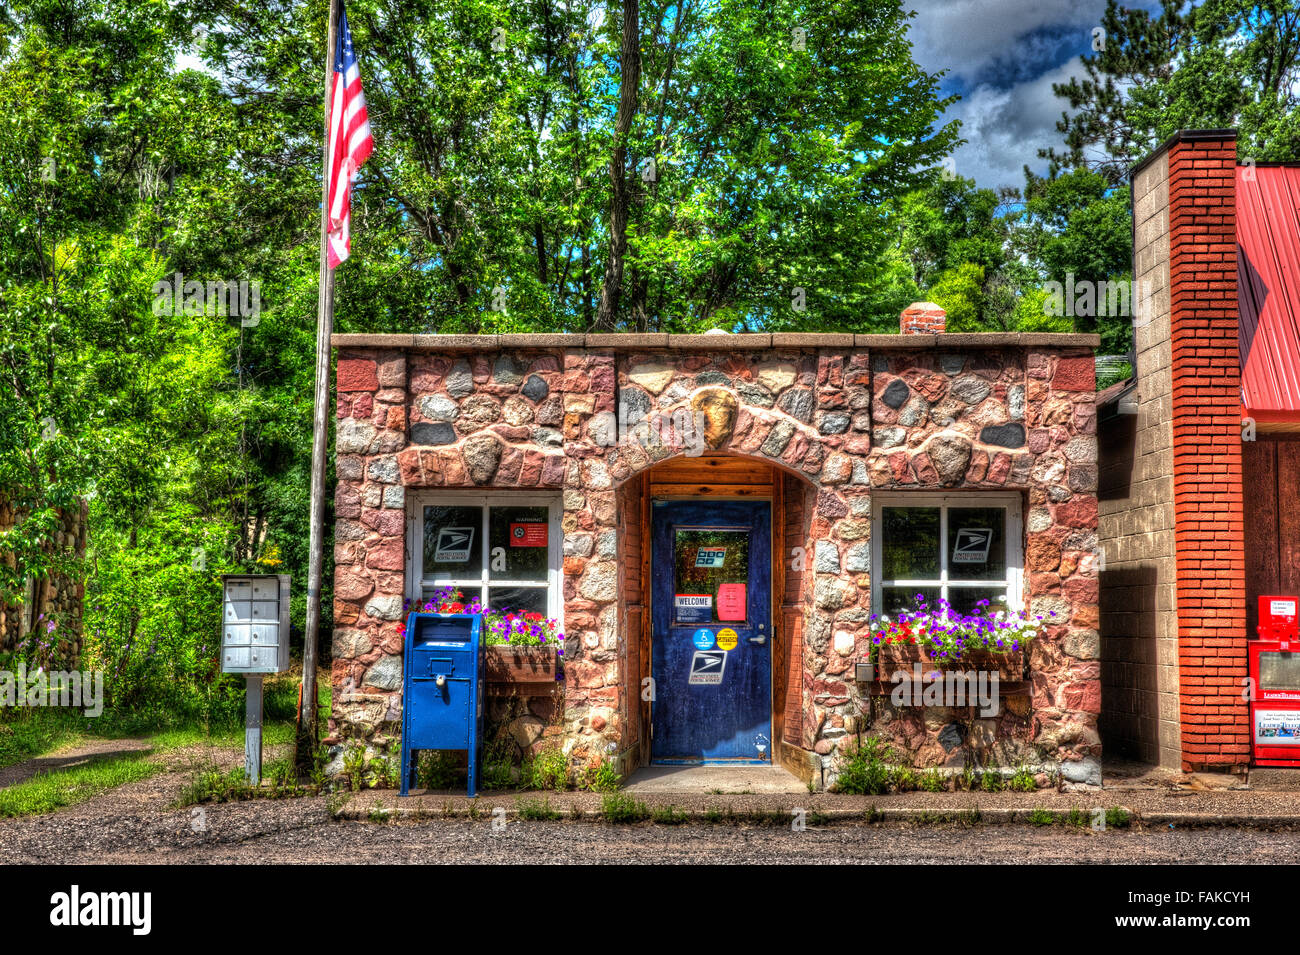 United States Post Office Mailbox Stock Photos & United States Post ...